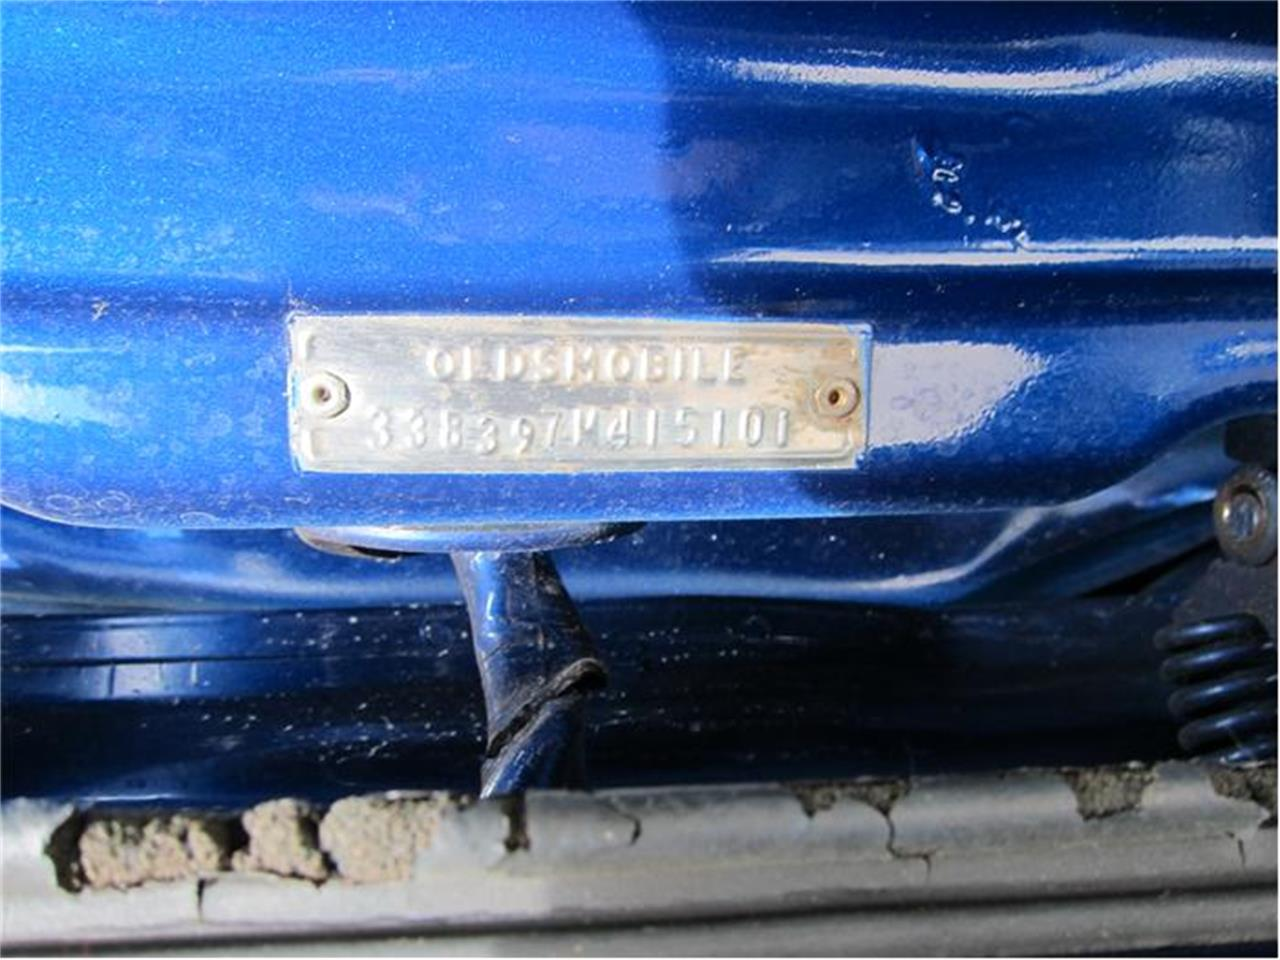 Large Picture of Classic 1967 Oldsmobile Cutlass Supreme - $12,000.00 - 7ZHU